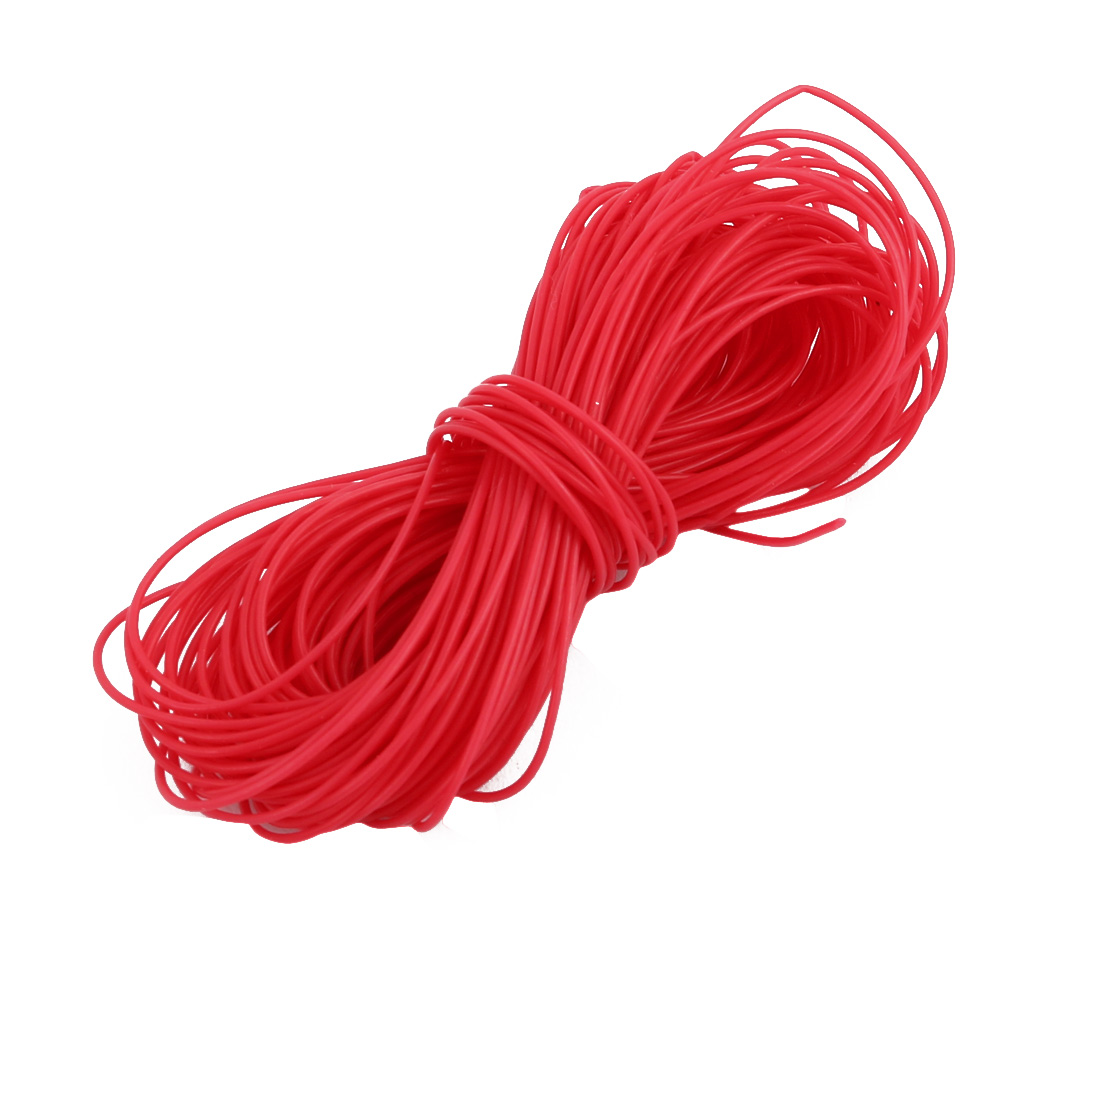 0.38mmx0.68mm PTFE Resistant High Temperature Red Tubing 10 Meters 32.8Ft